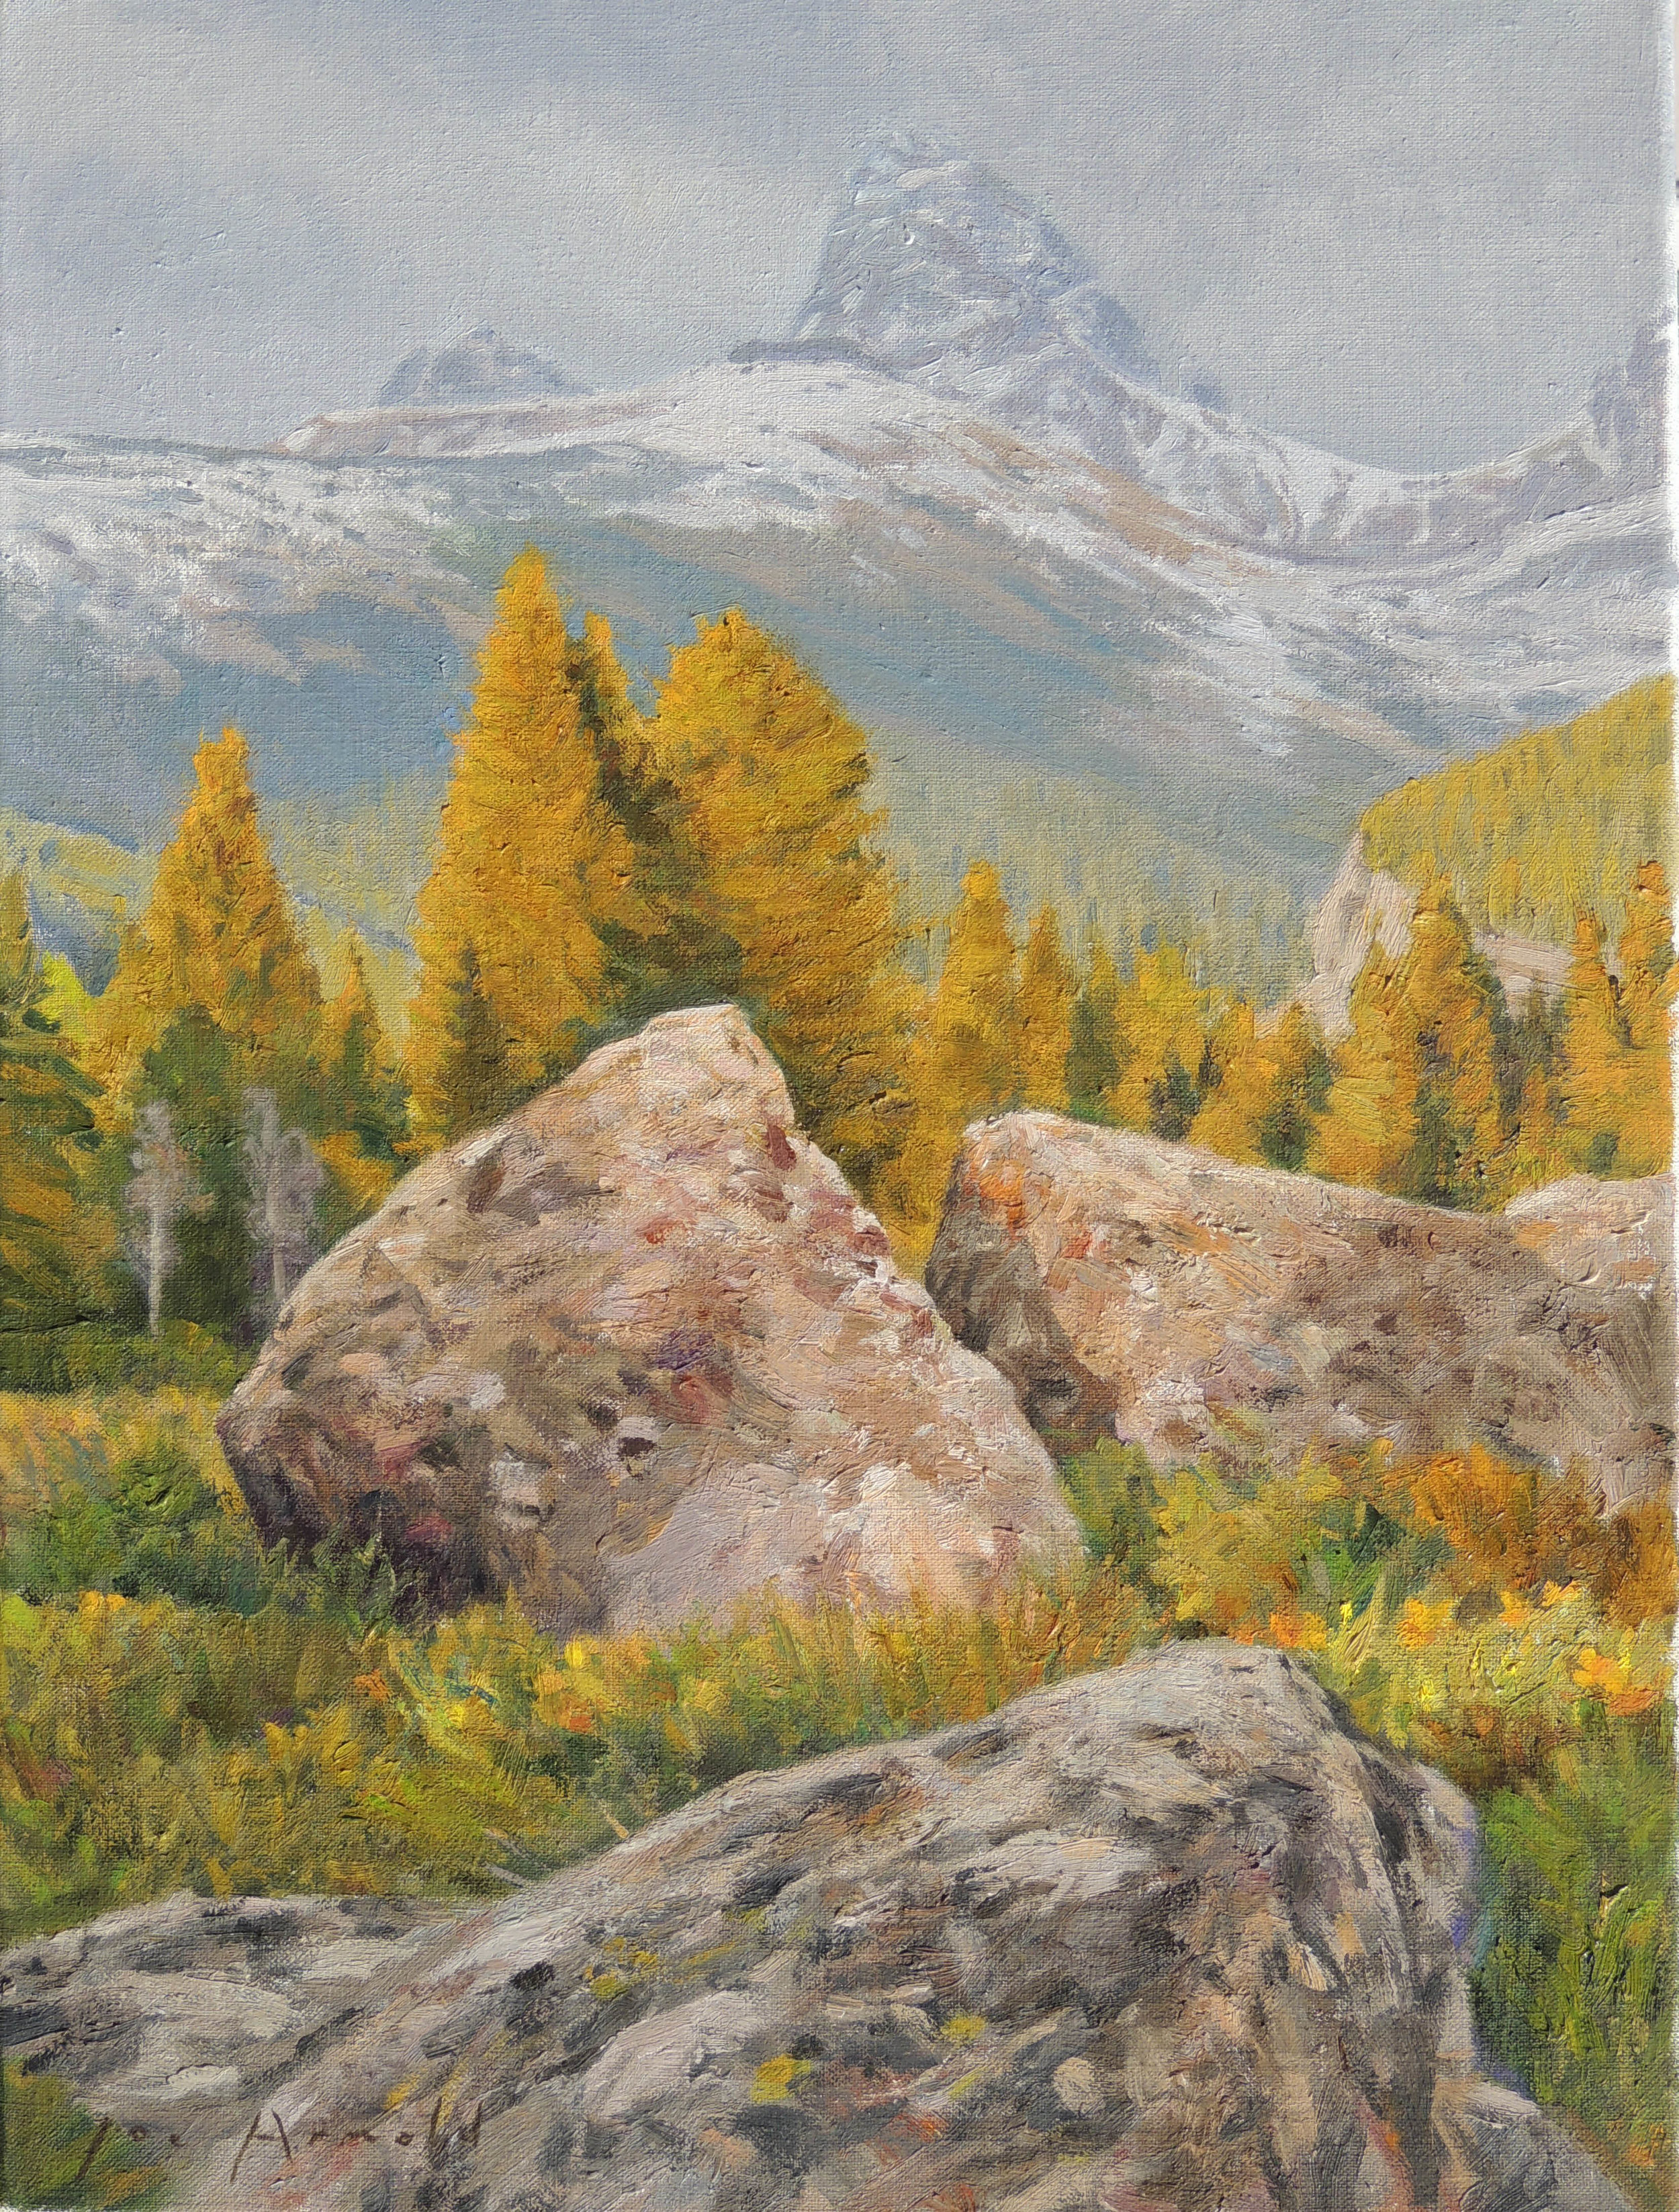 Cascade Canyon, pastel 16 x 19 in. 2018 by Joe Arnold